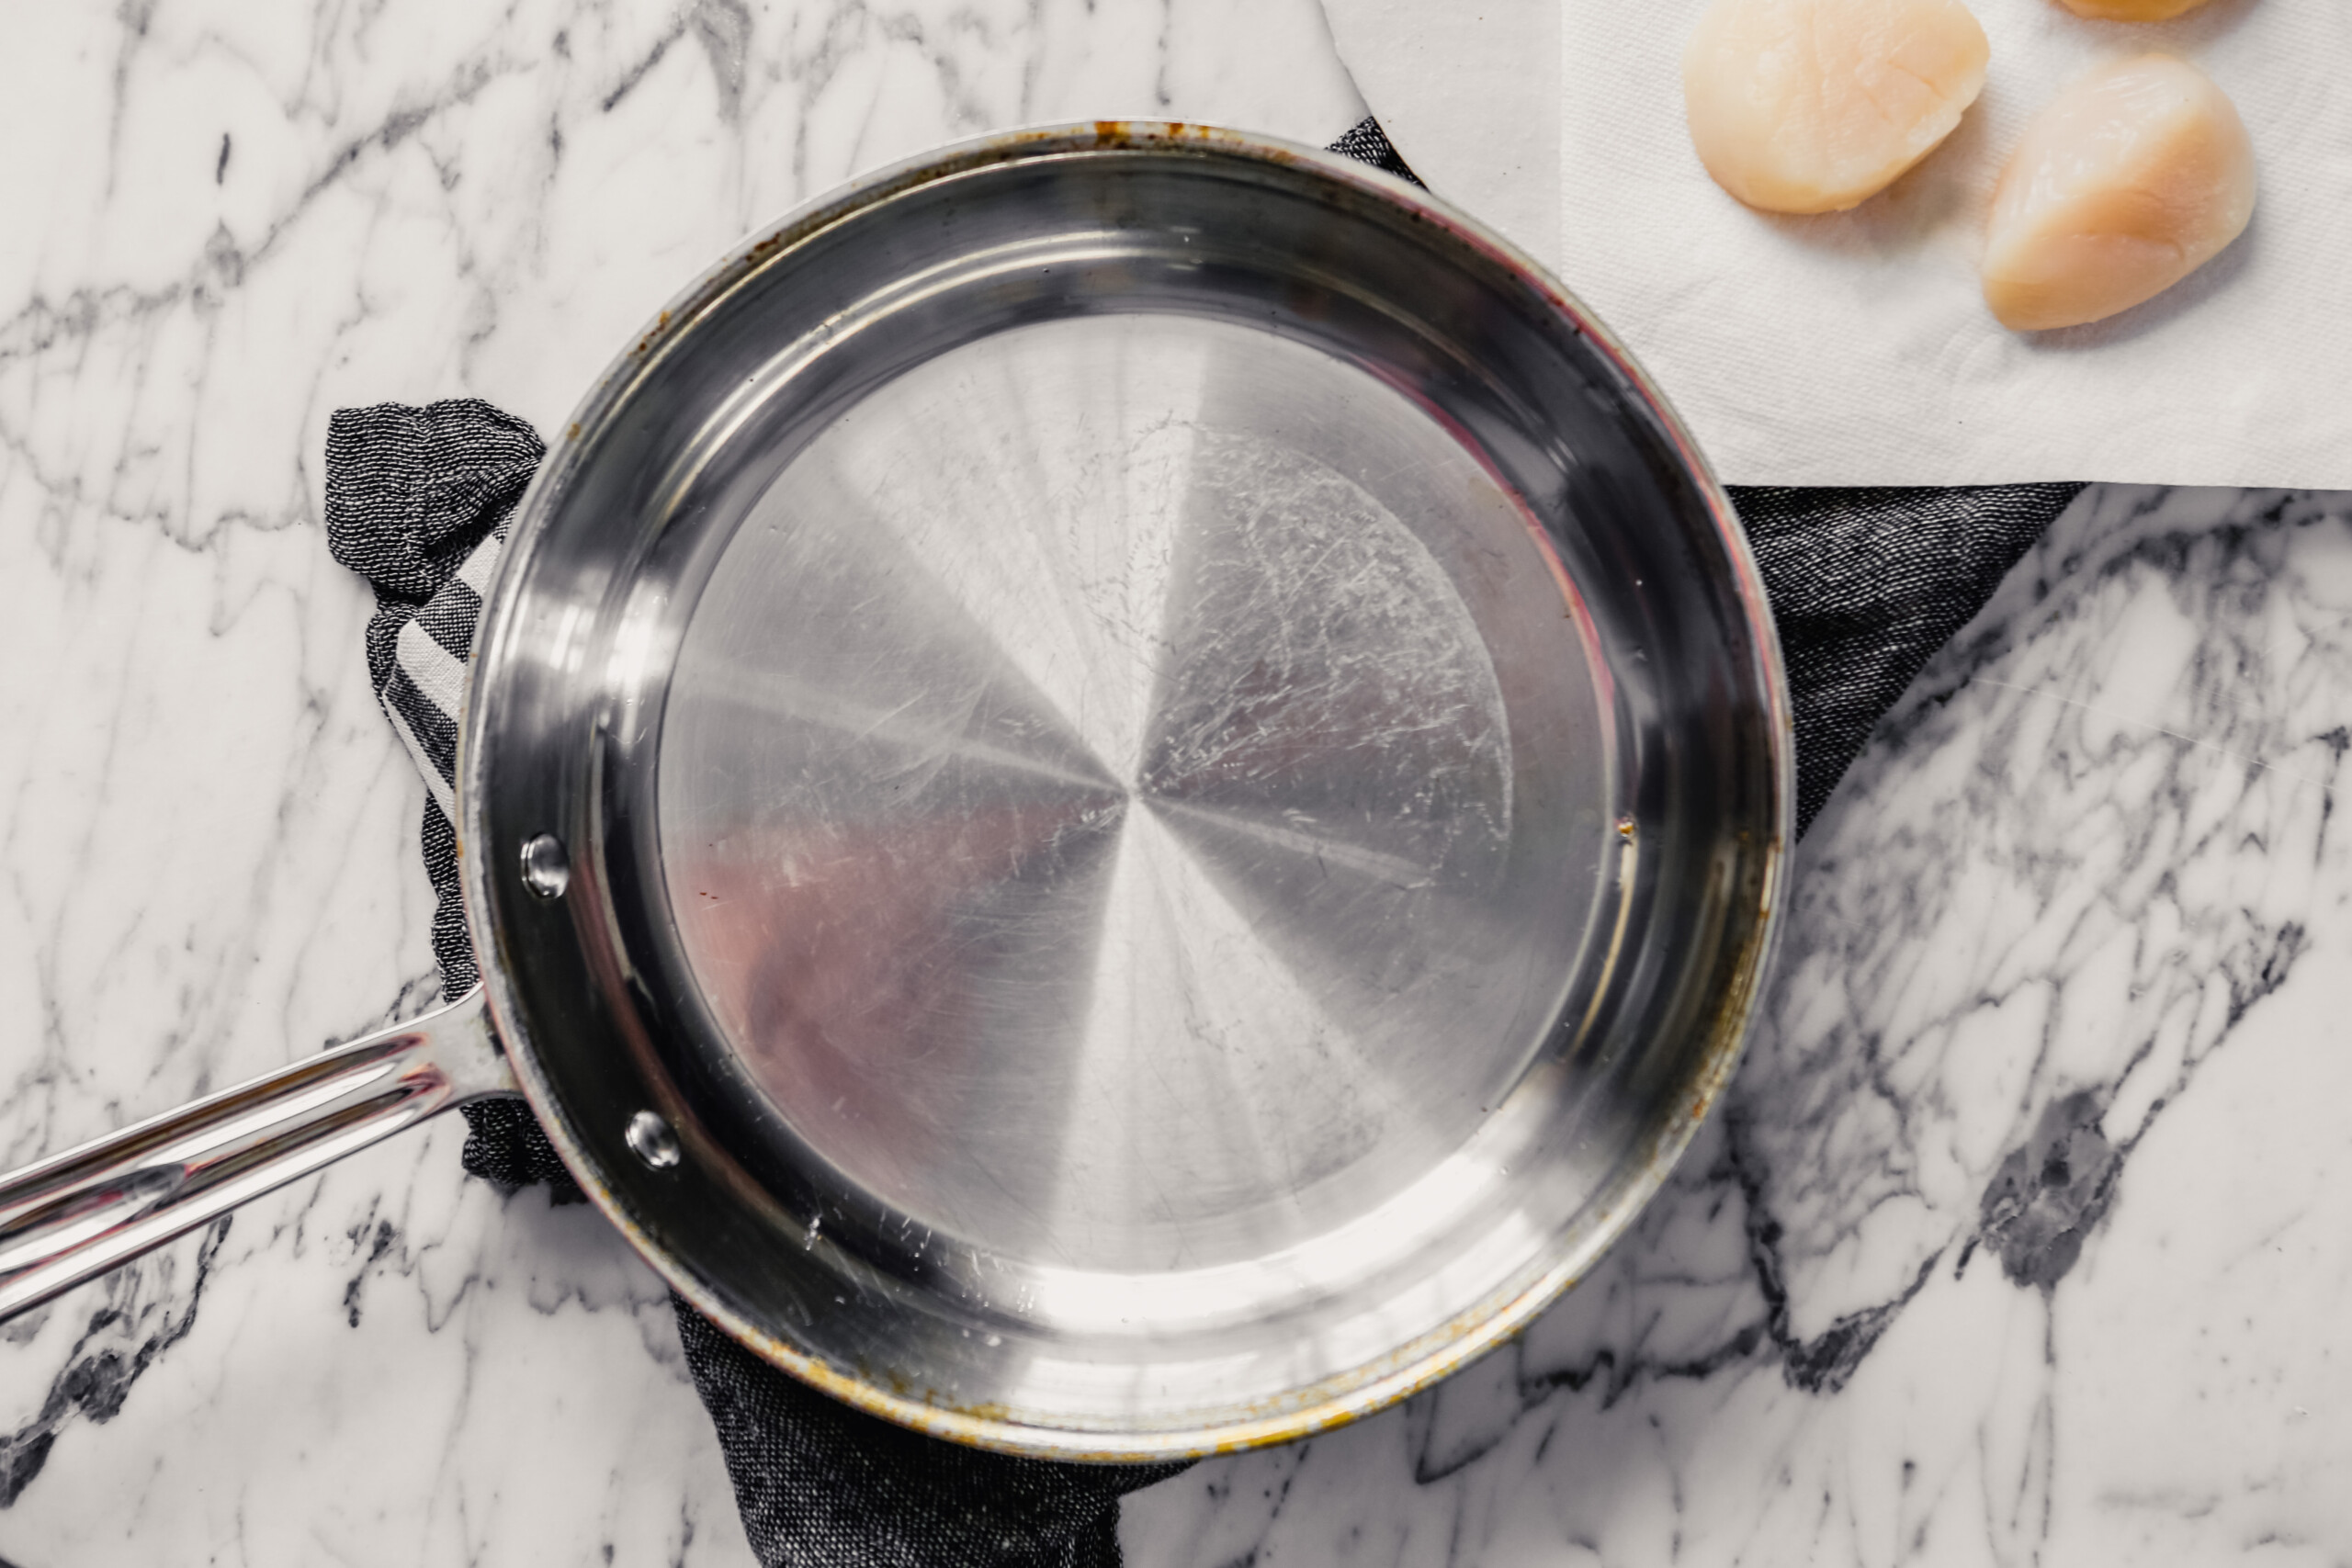 Photograph of a skillet with neutral oil